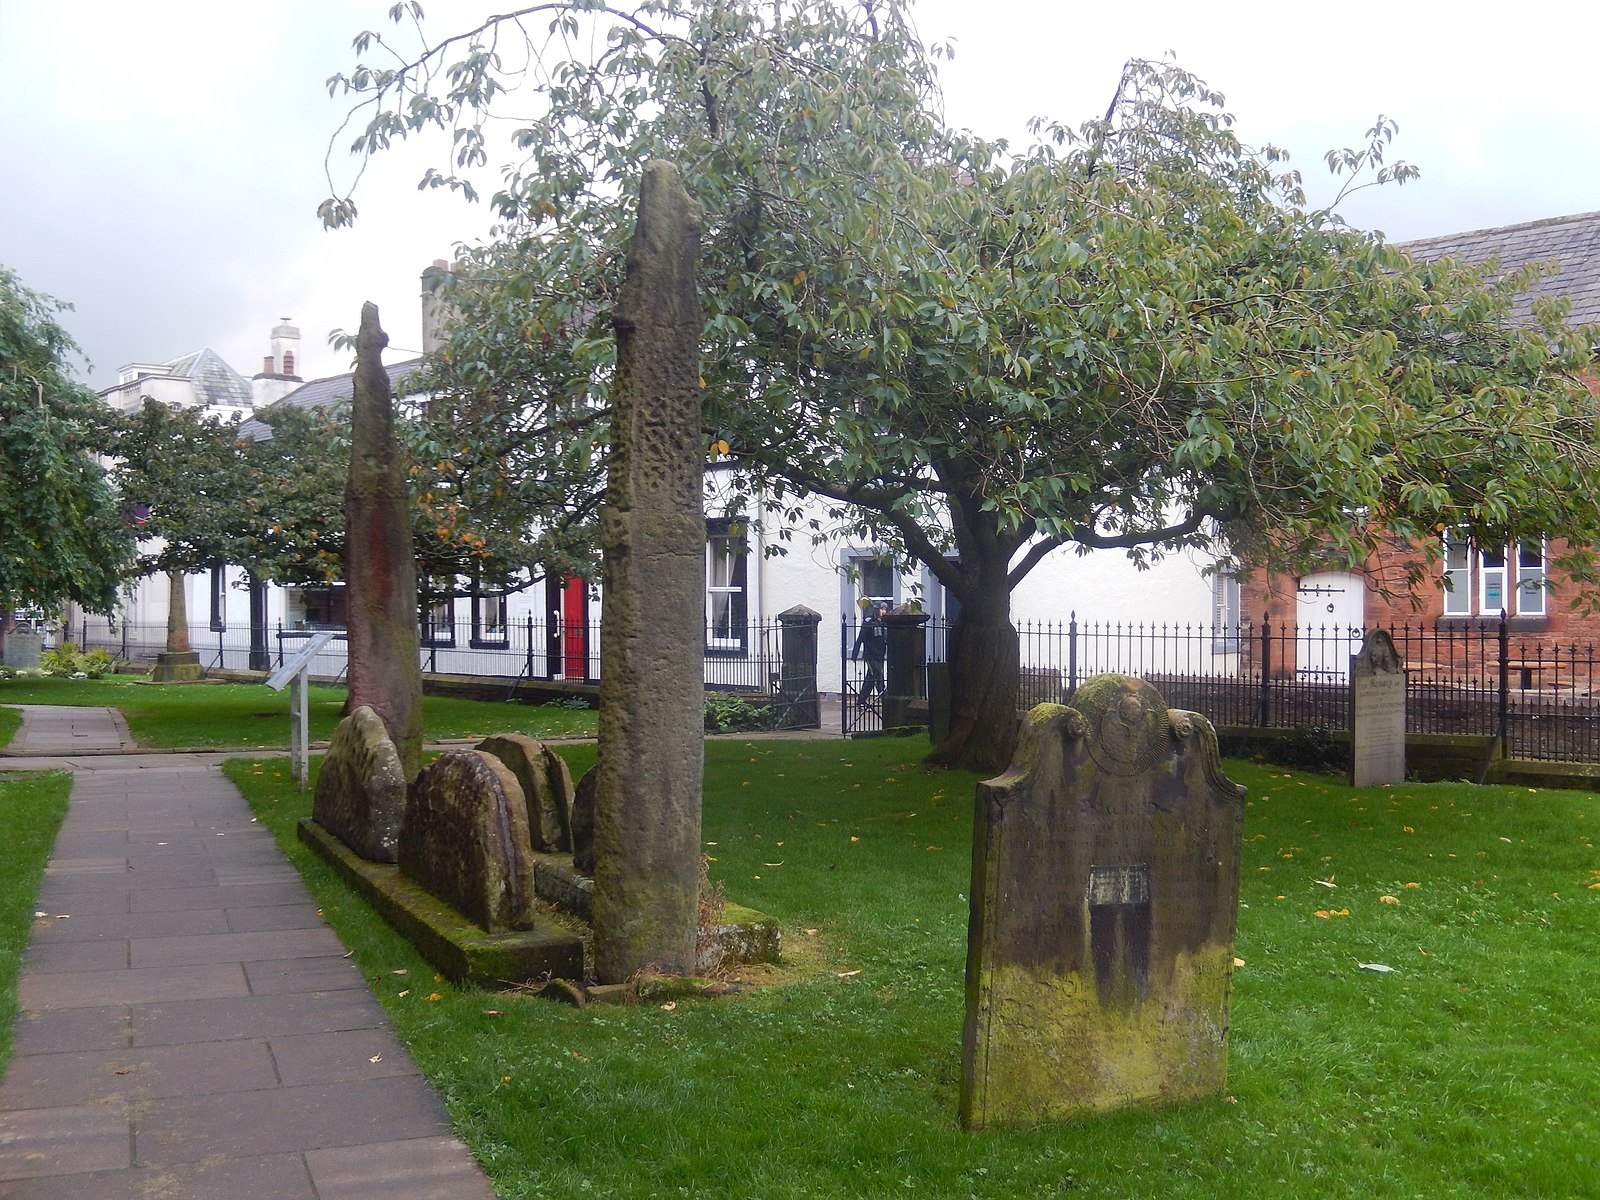 The Giant's Grave, Penrith